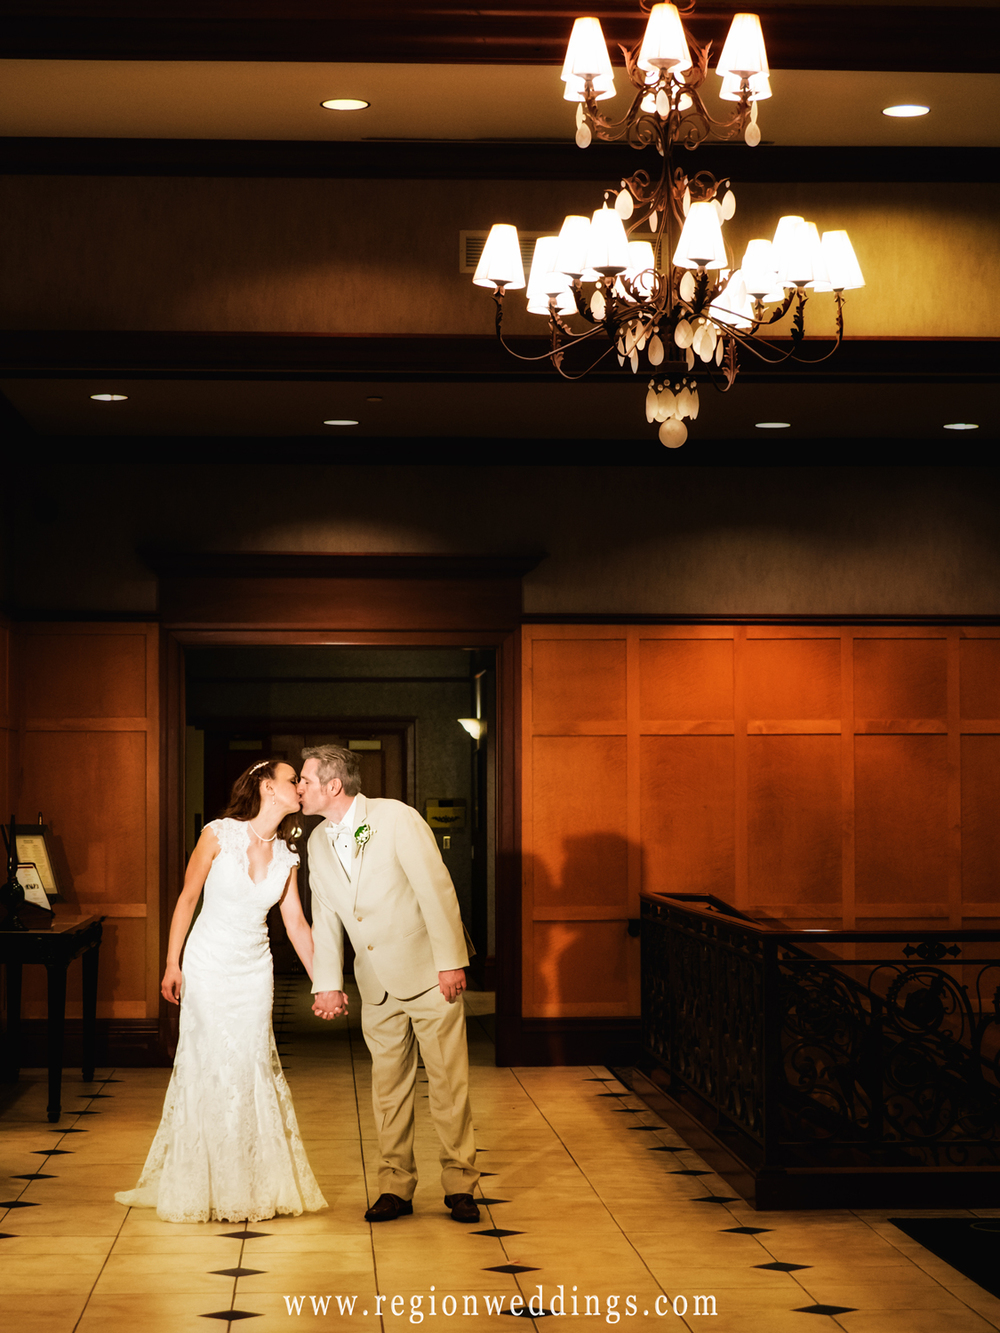 The bride and groom kiss romantically underneath a chandelier at Sand Creek Country Club.